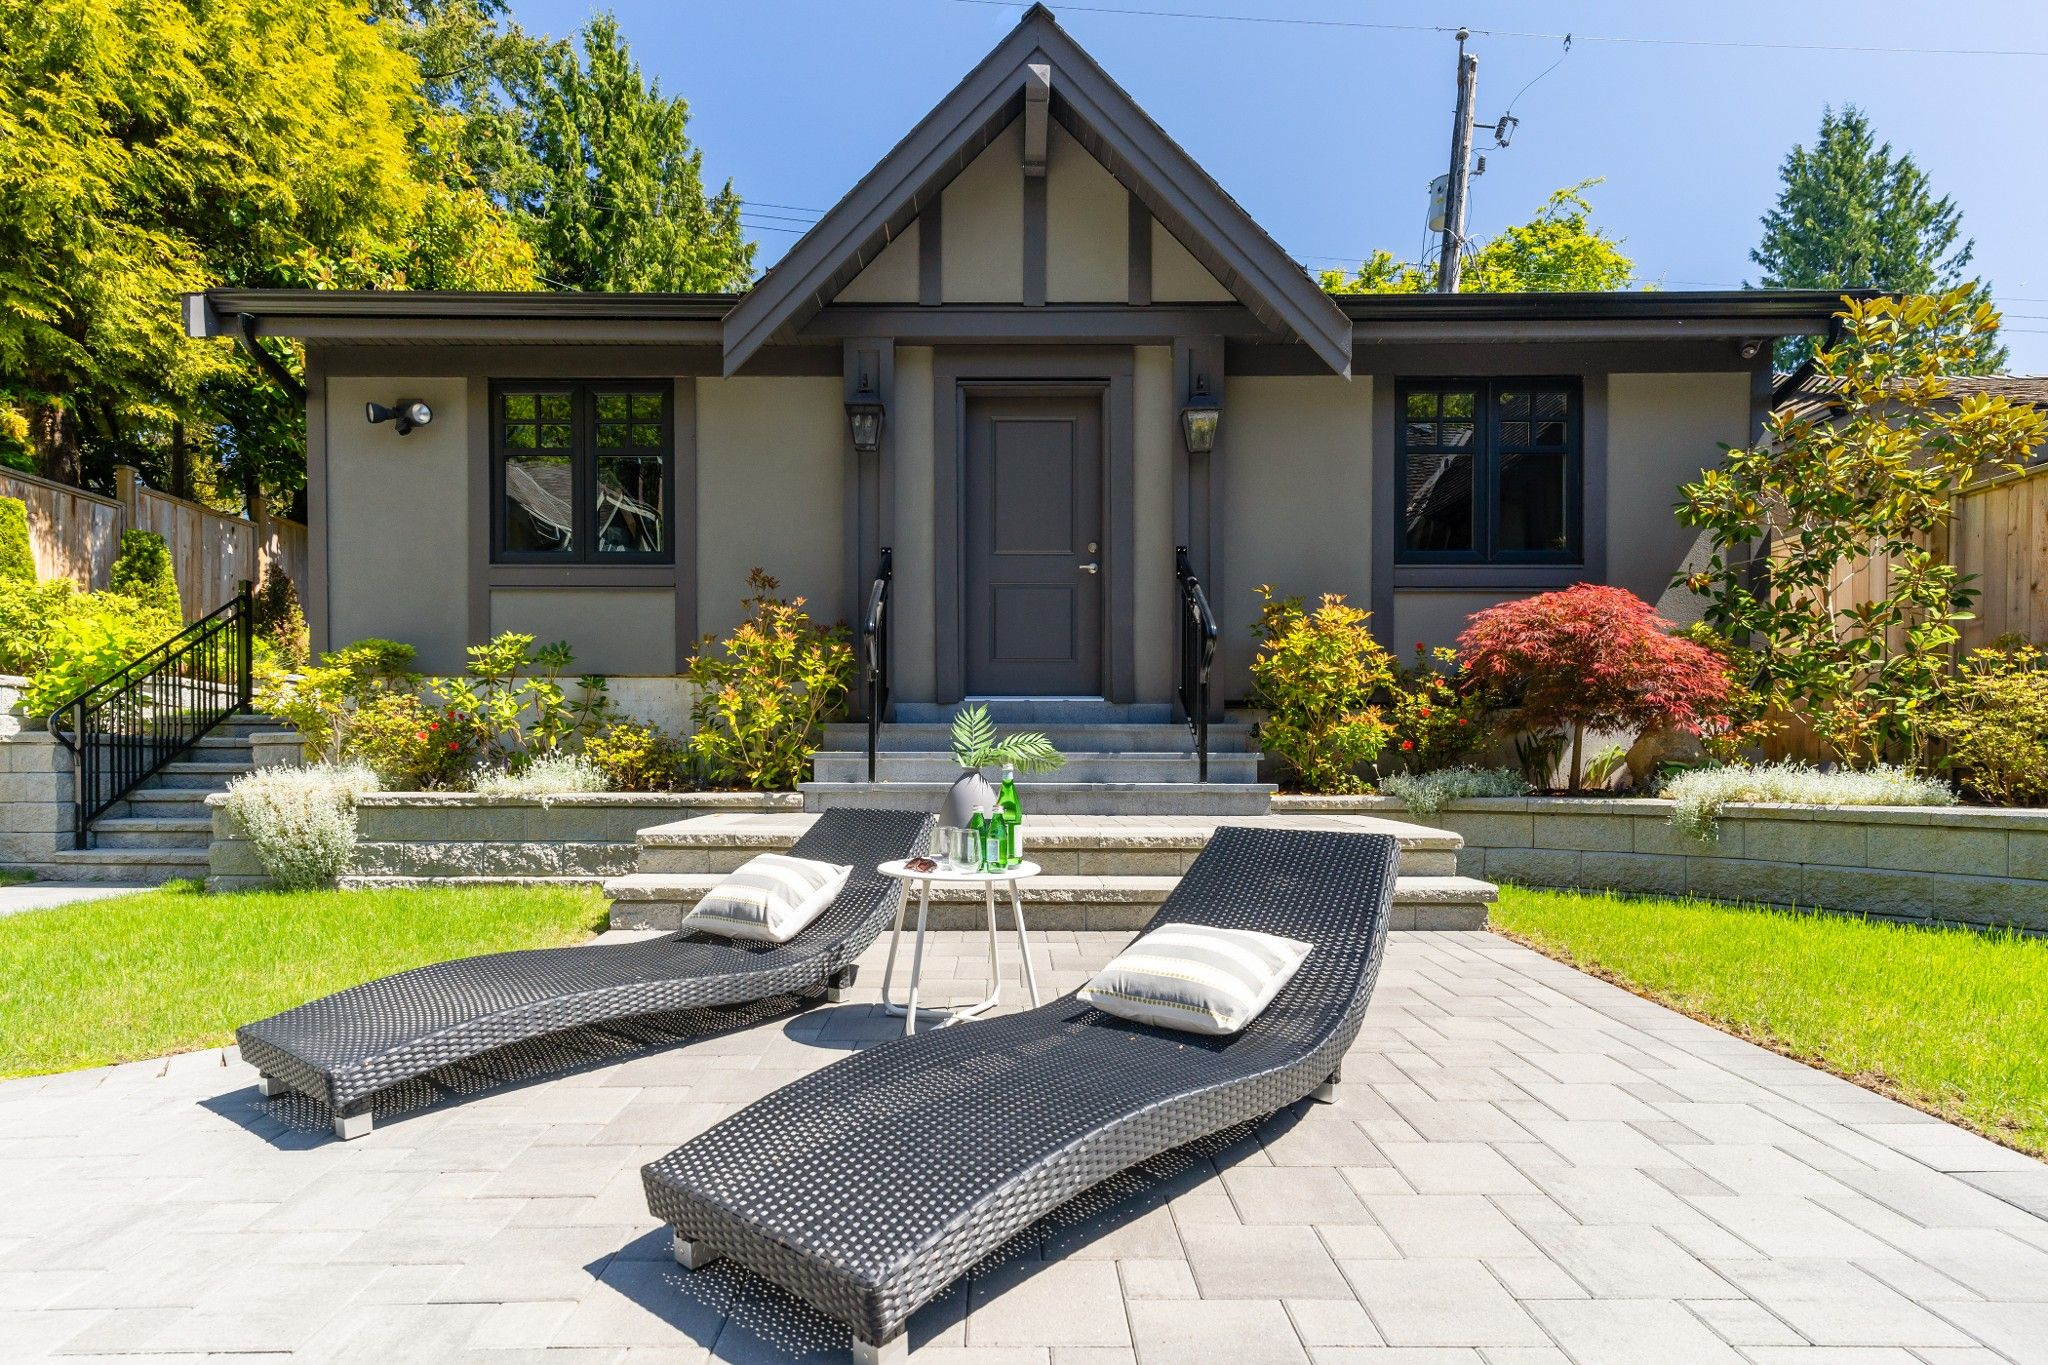 Photo 46: Photos: 5756 ALMA STREET in VANCOUVER: Southlands House for sale (Vancouver West)  : MLS®# R2588229